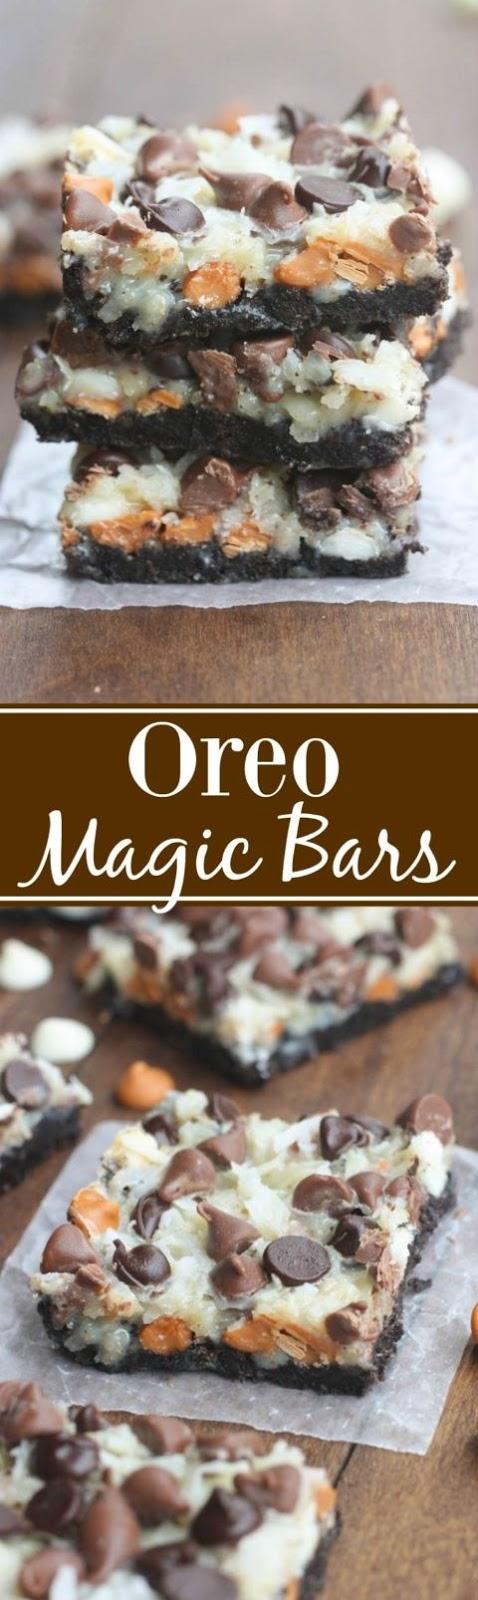 Oreo Magic Bars - Seven simple layers of Oreo chocolate bliss starting with an Oreo crust, three different types of chocolate chips, coconut and nuts. This is the EASIEST dessert, and always a party…